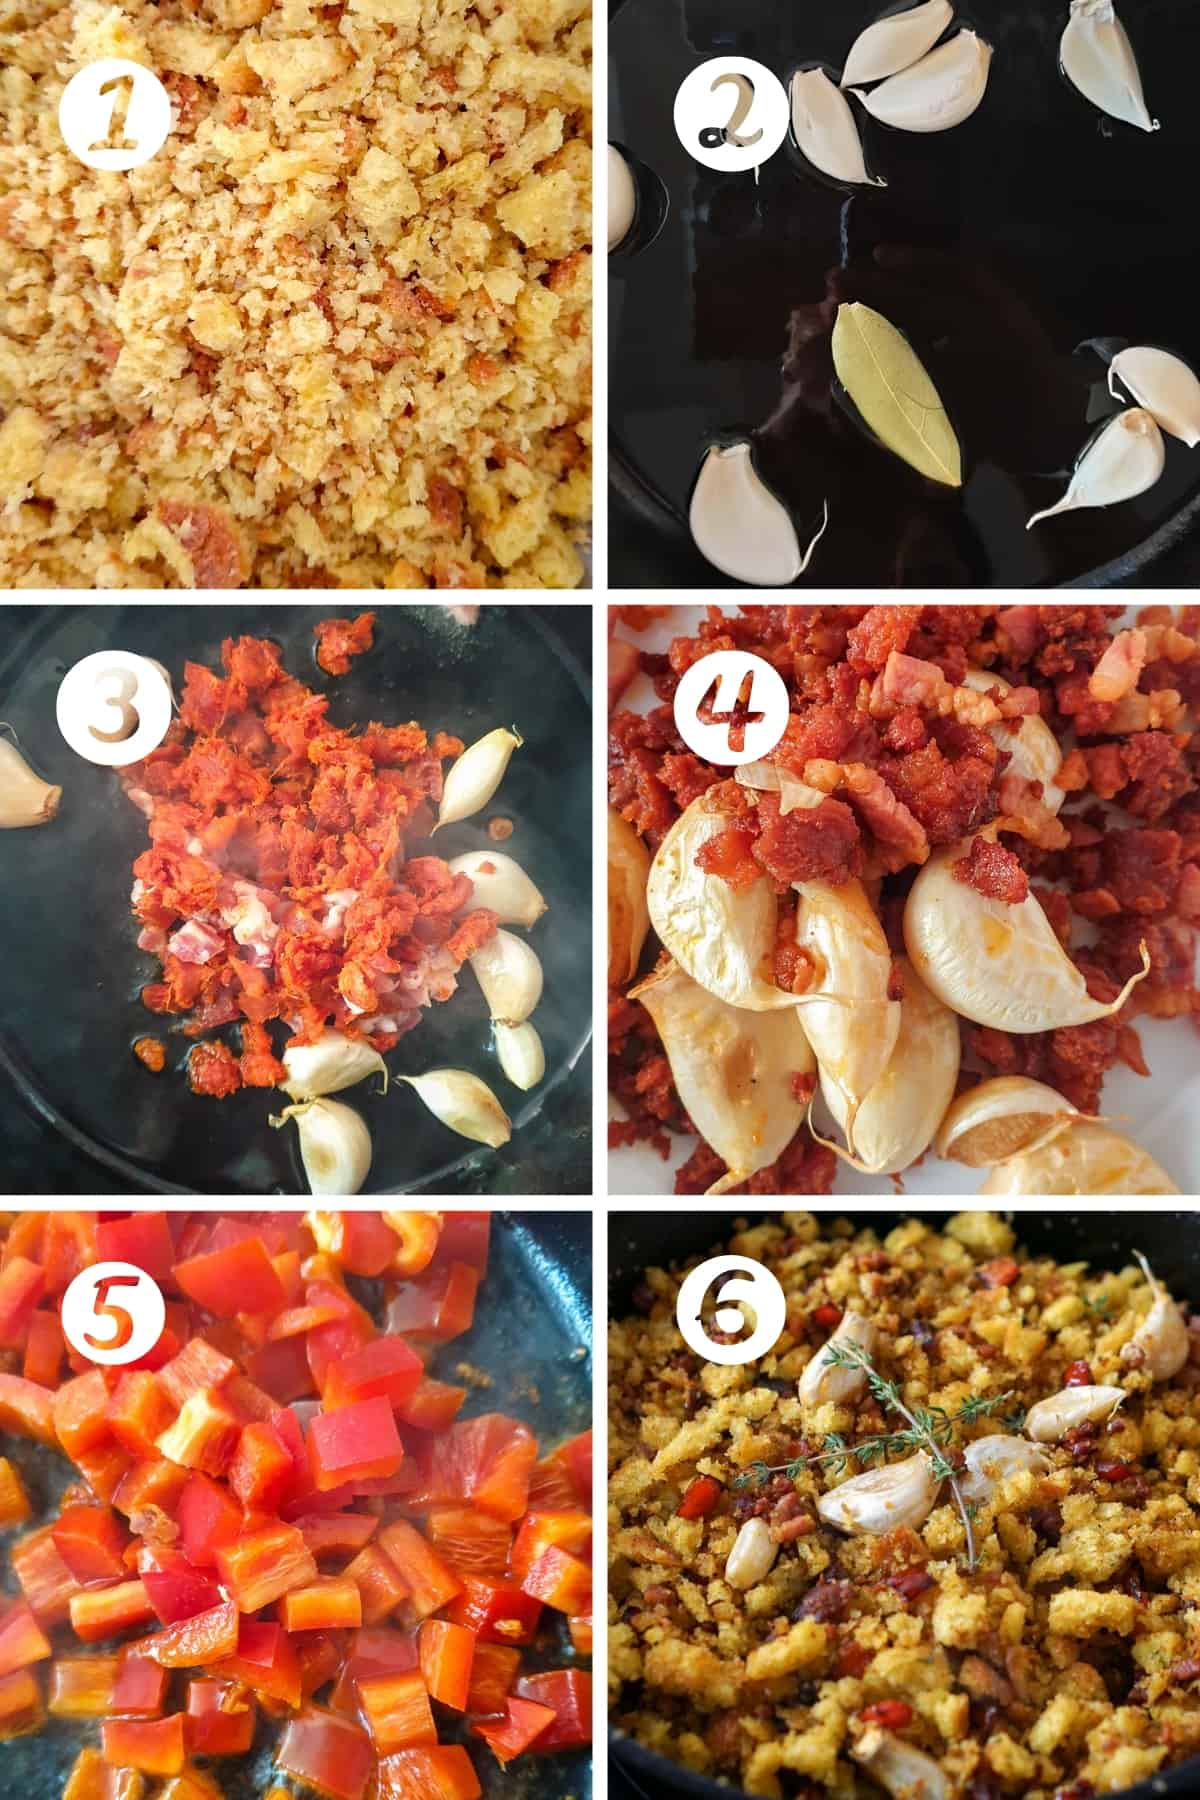 Step by Step for making migas con chorizo. 6 steps shown in a grid.